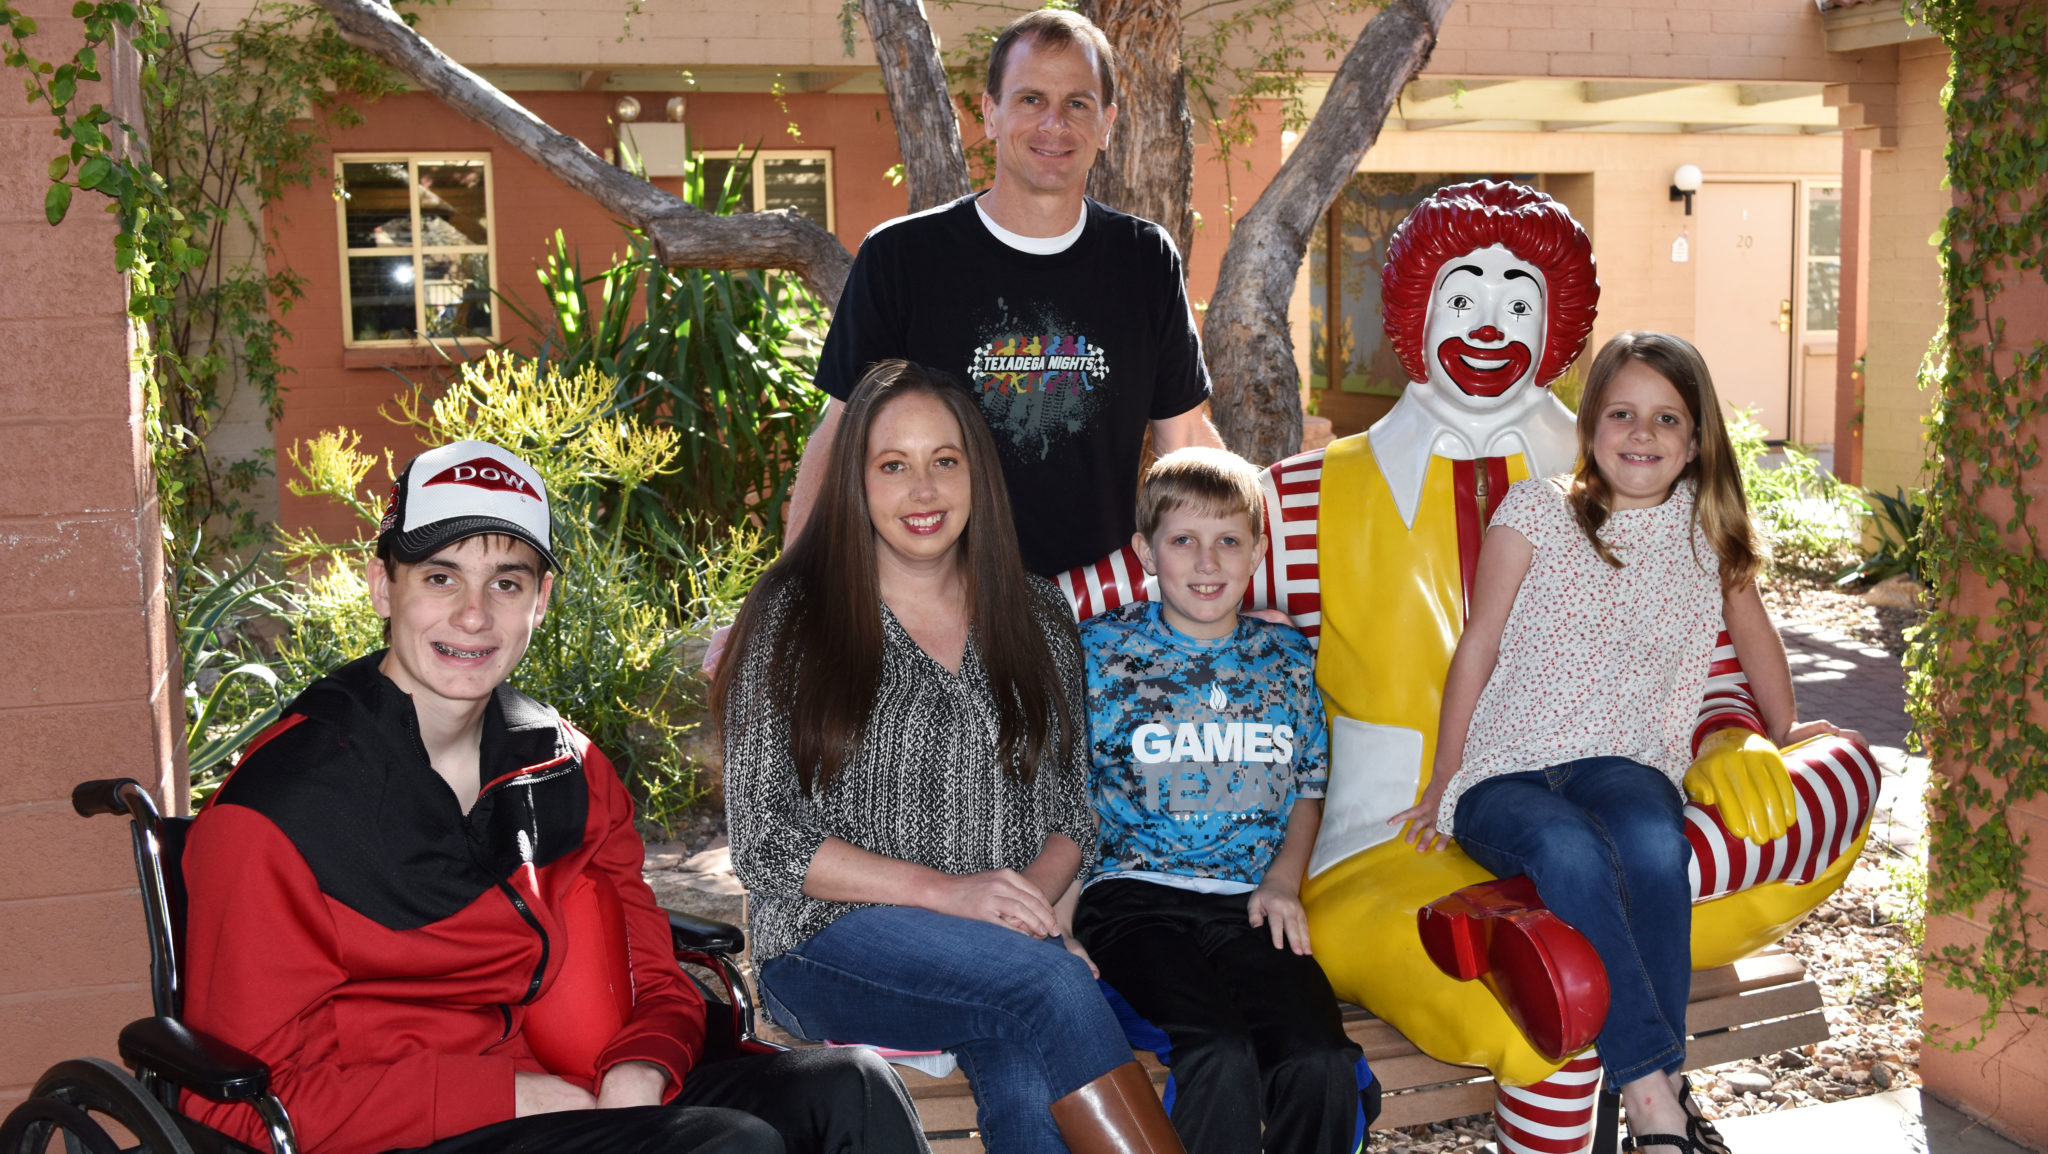 Family of 5 poses on the Ronald McDonald bench